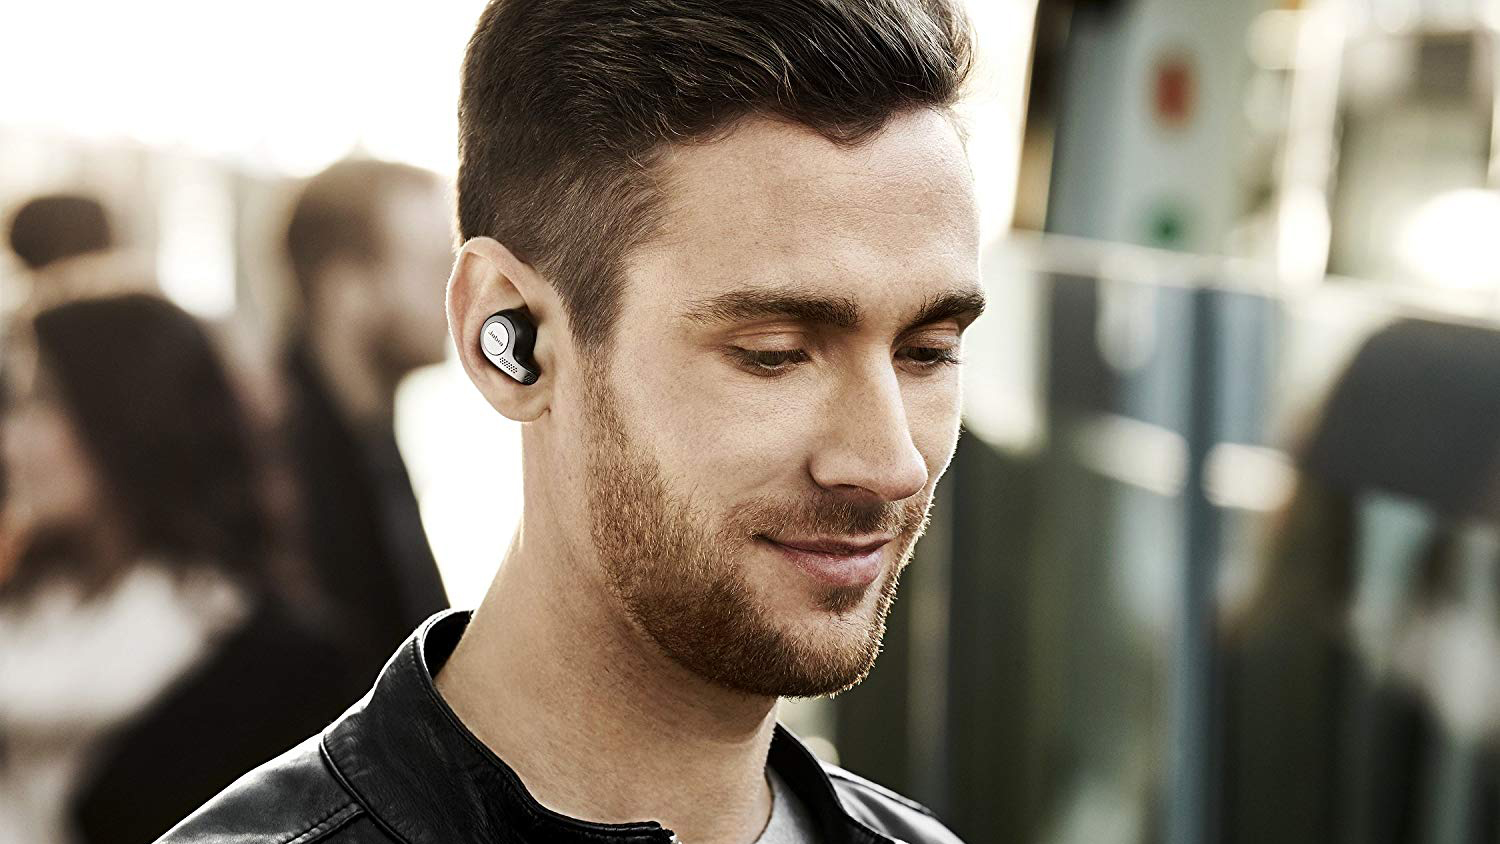 The 5 Best Alternatives for Apple AirPods